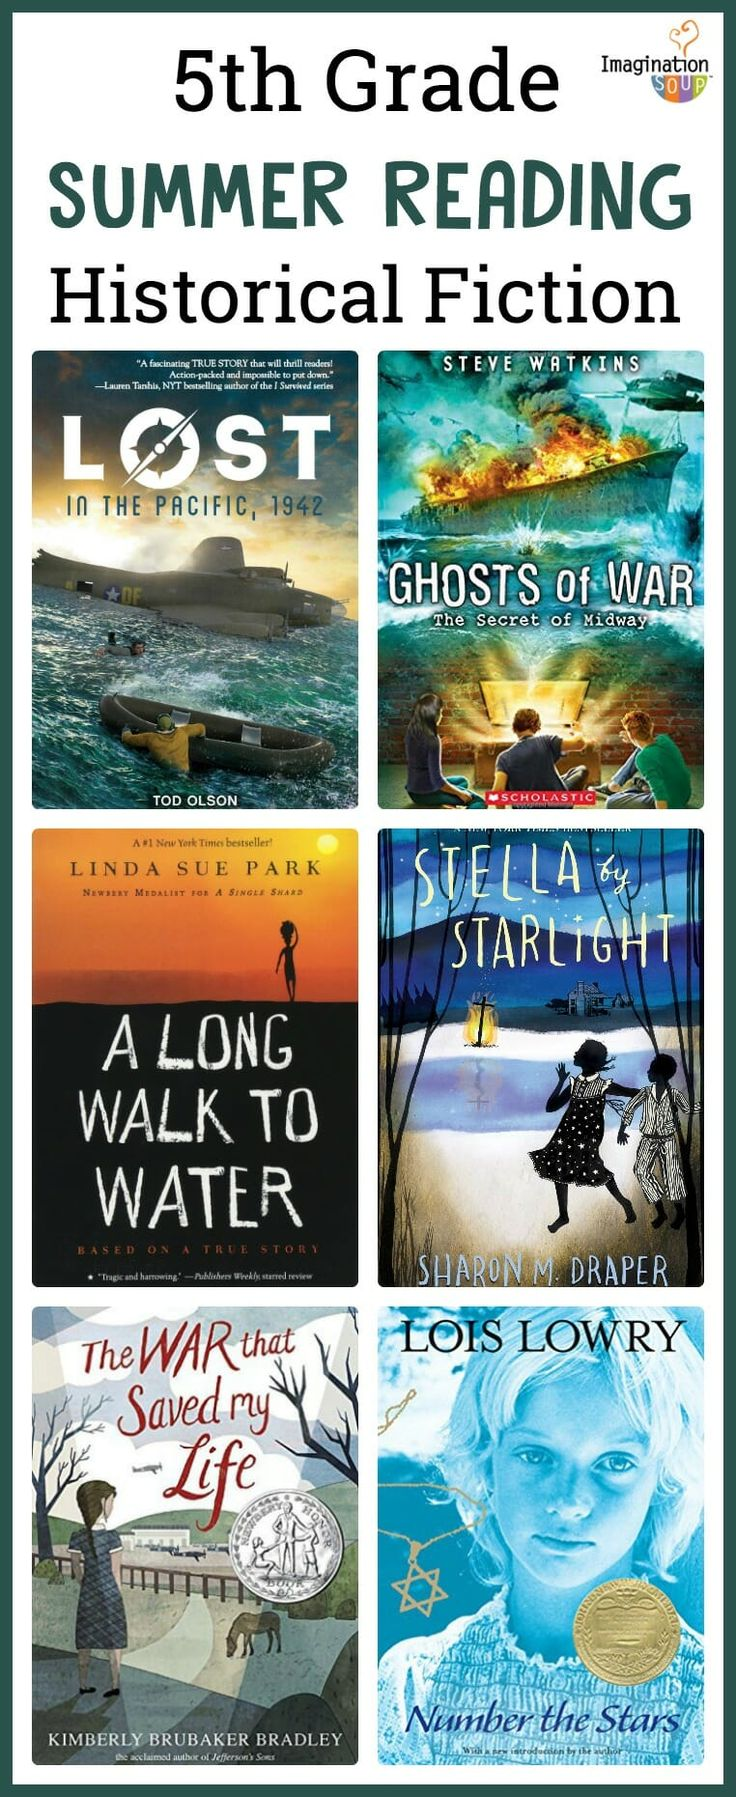 5th grade summer reading list ages 10 11 historical